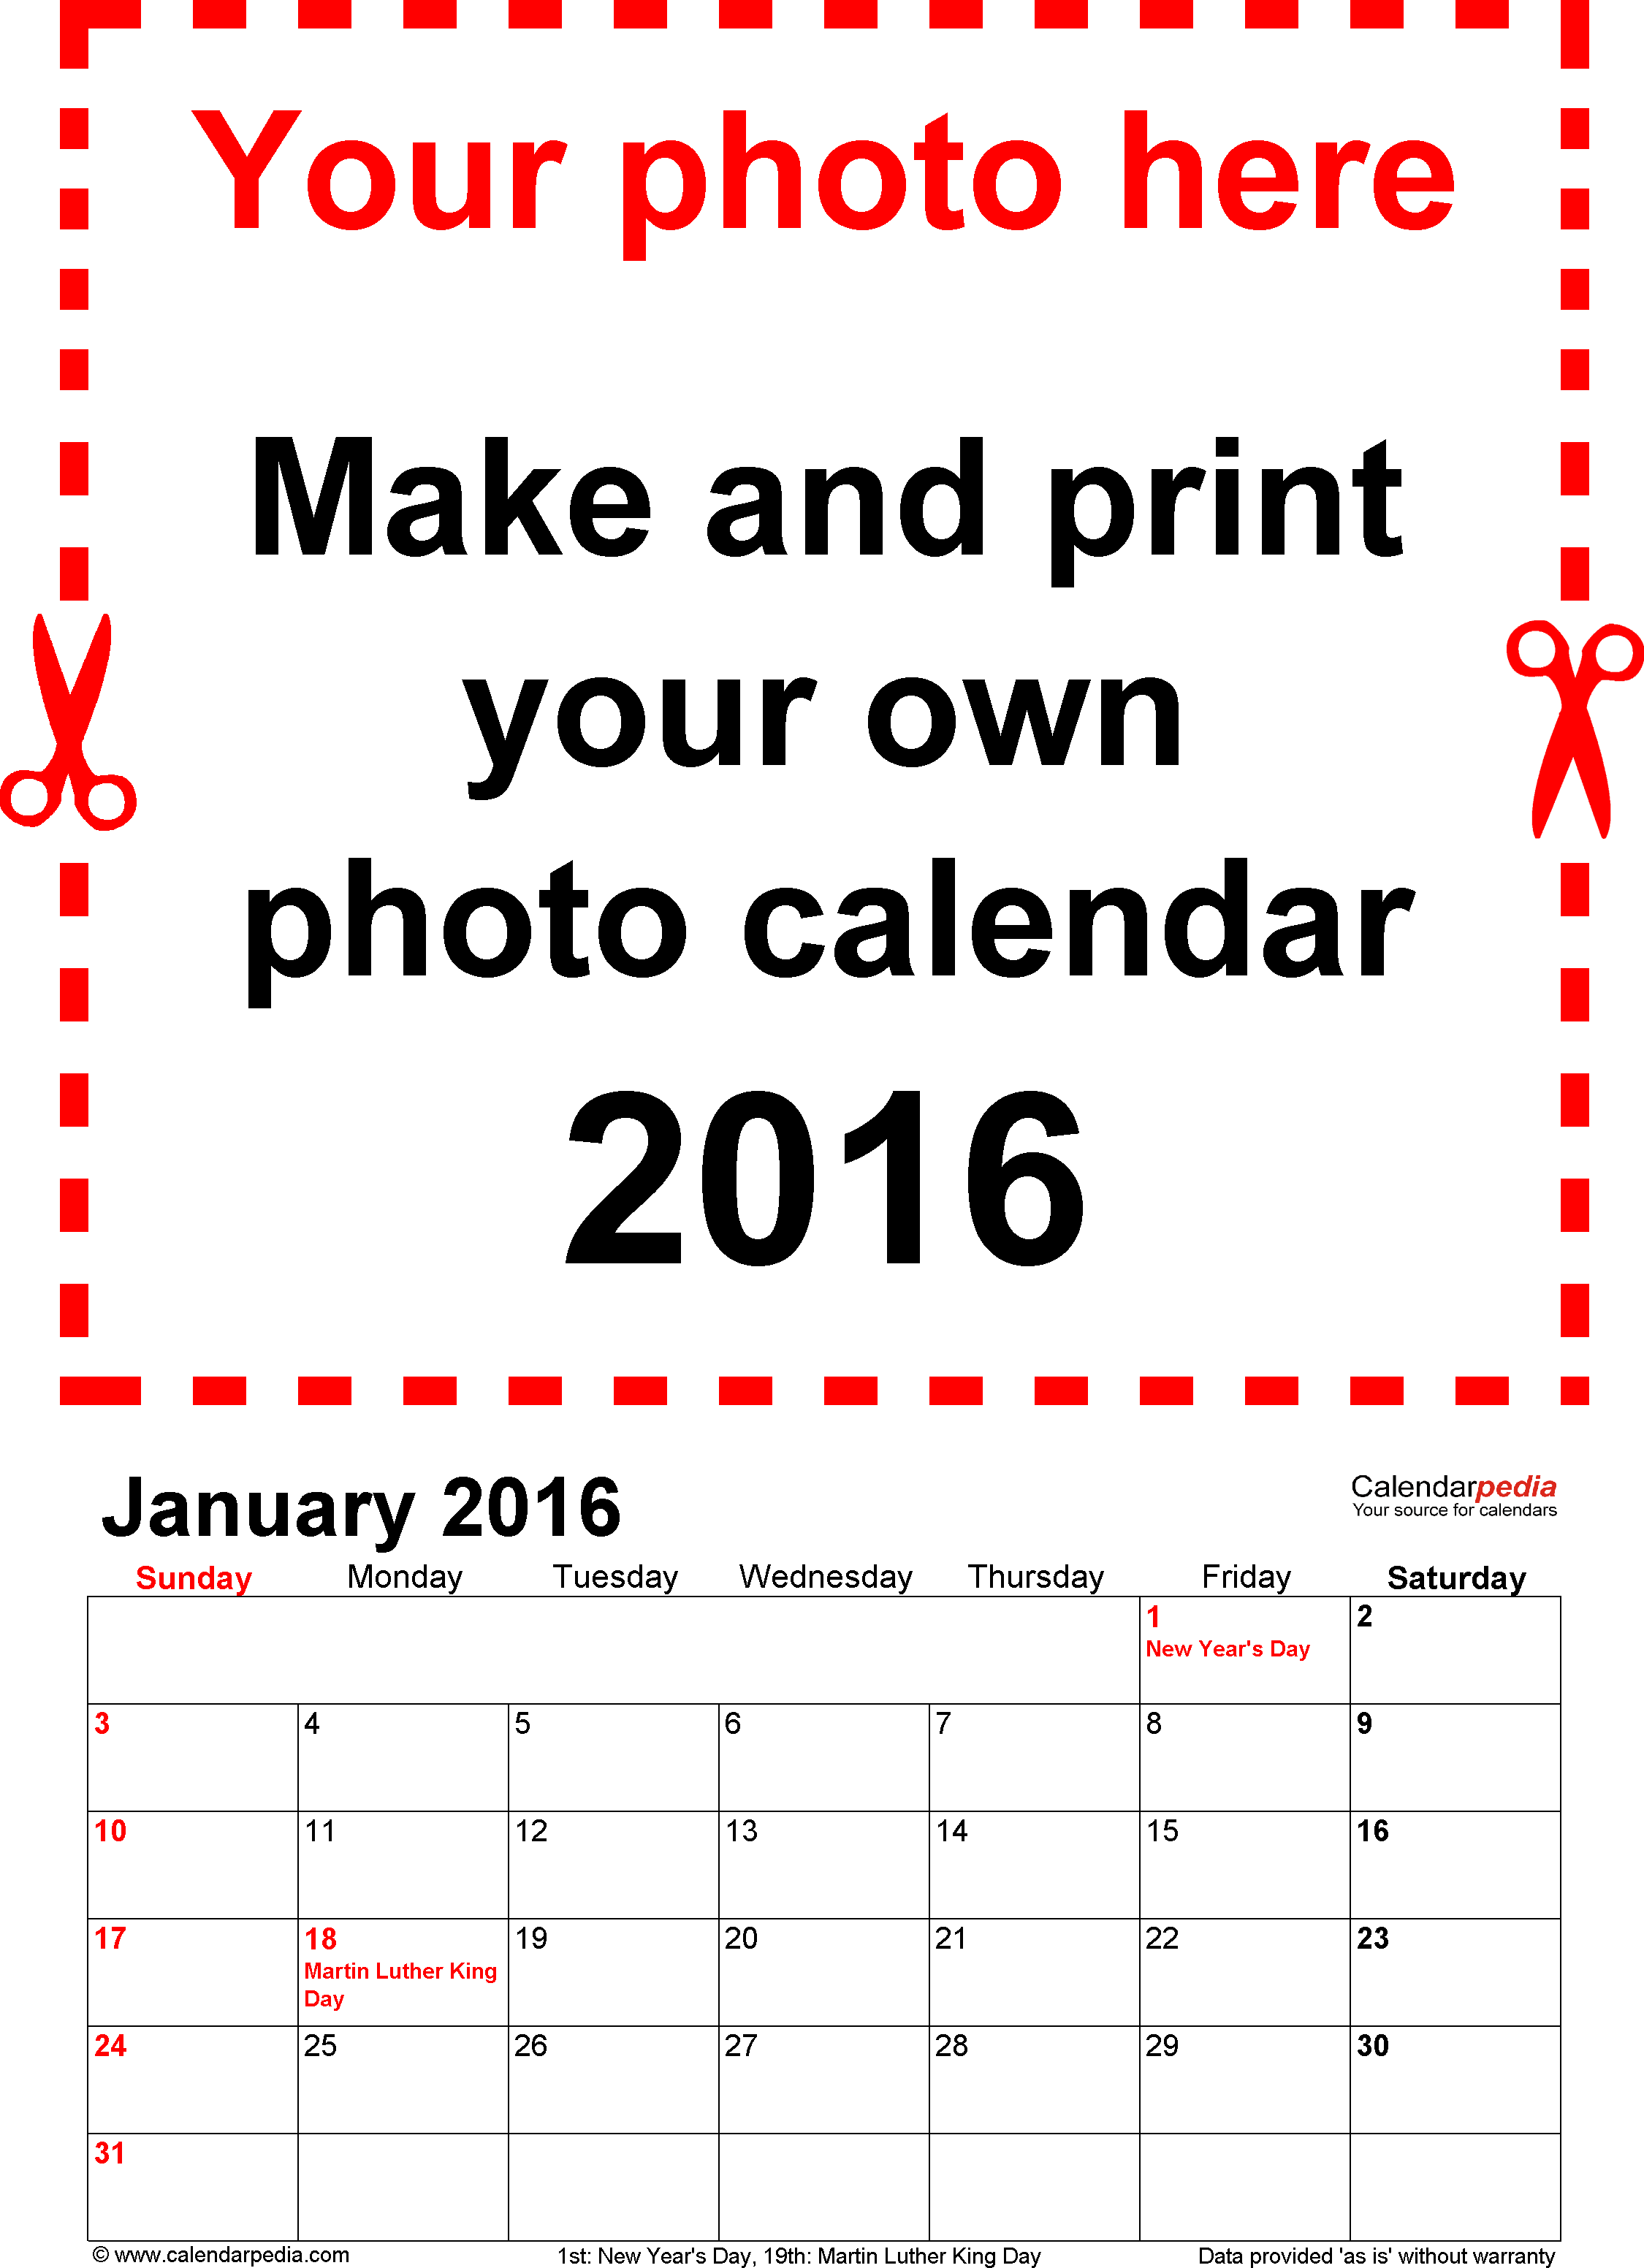 Template 1: Photo calendar 2016 for Excel, 12 pages, portrait format, standard layout